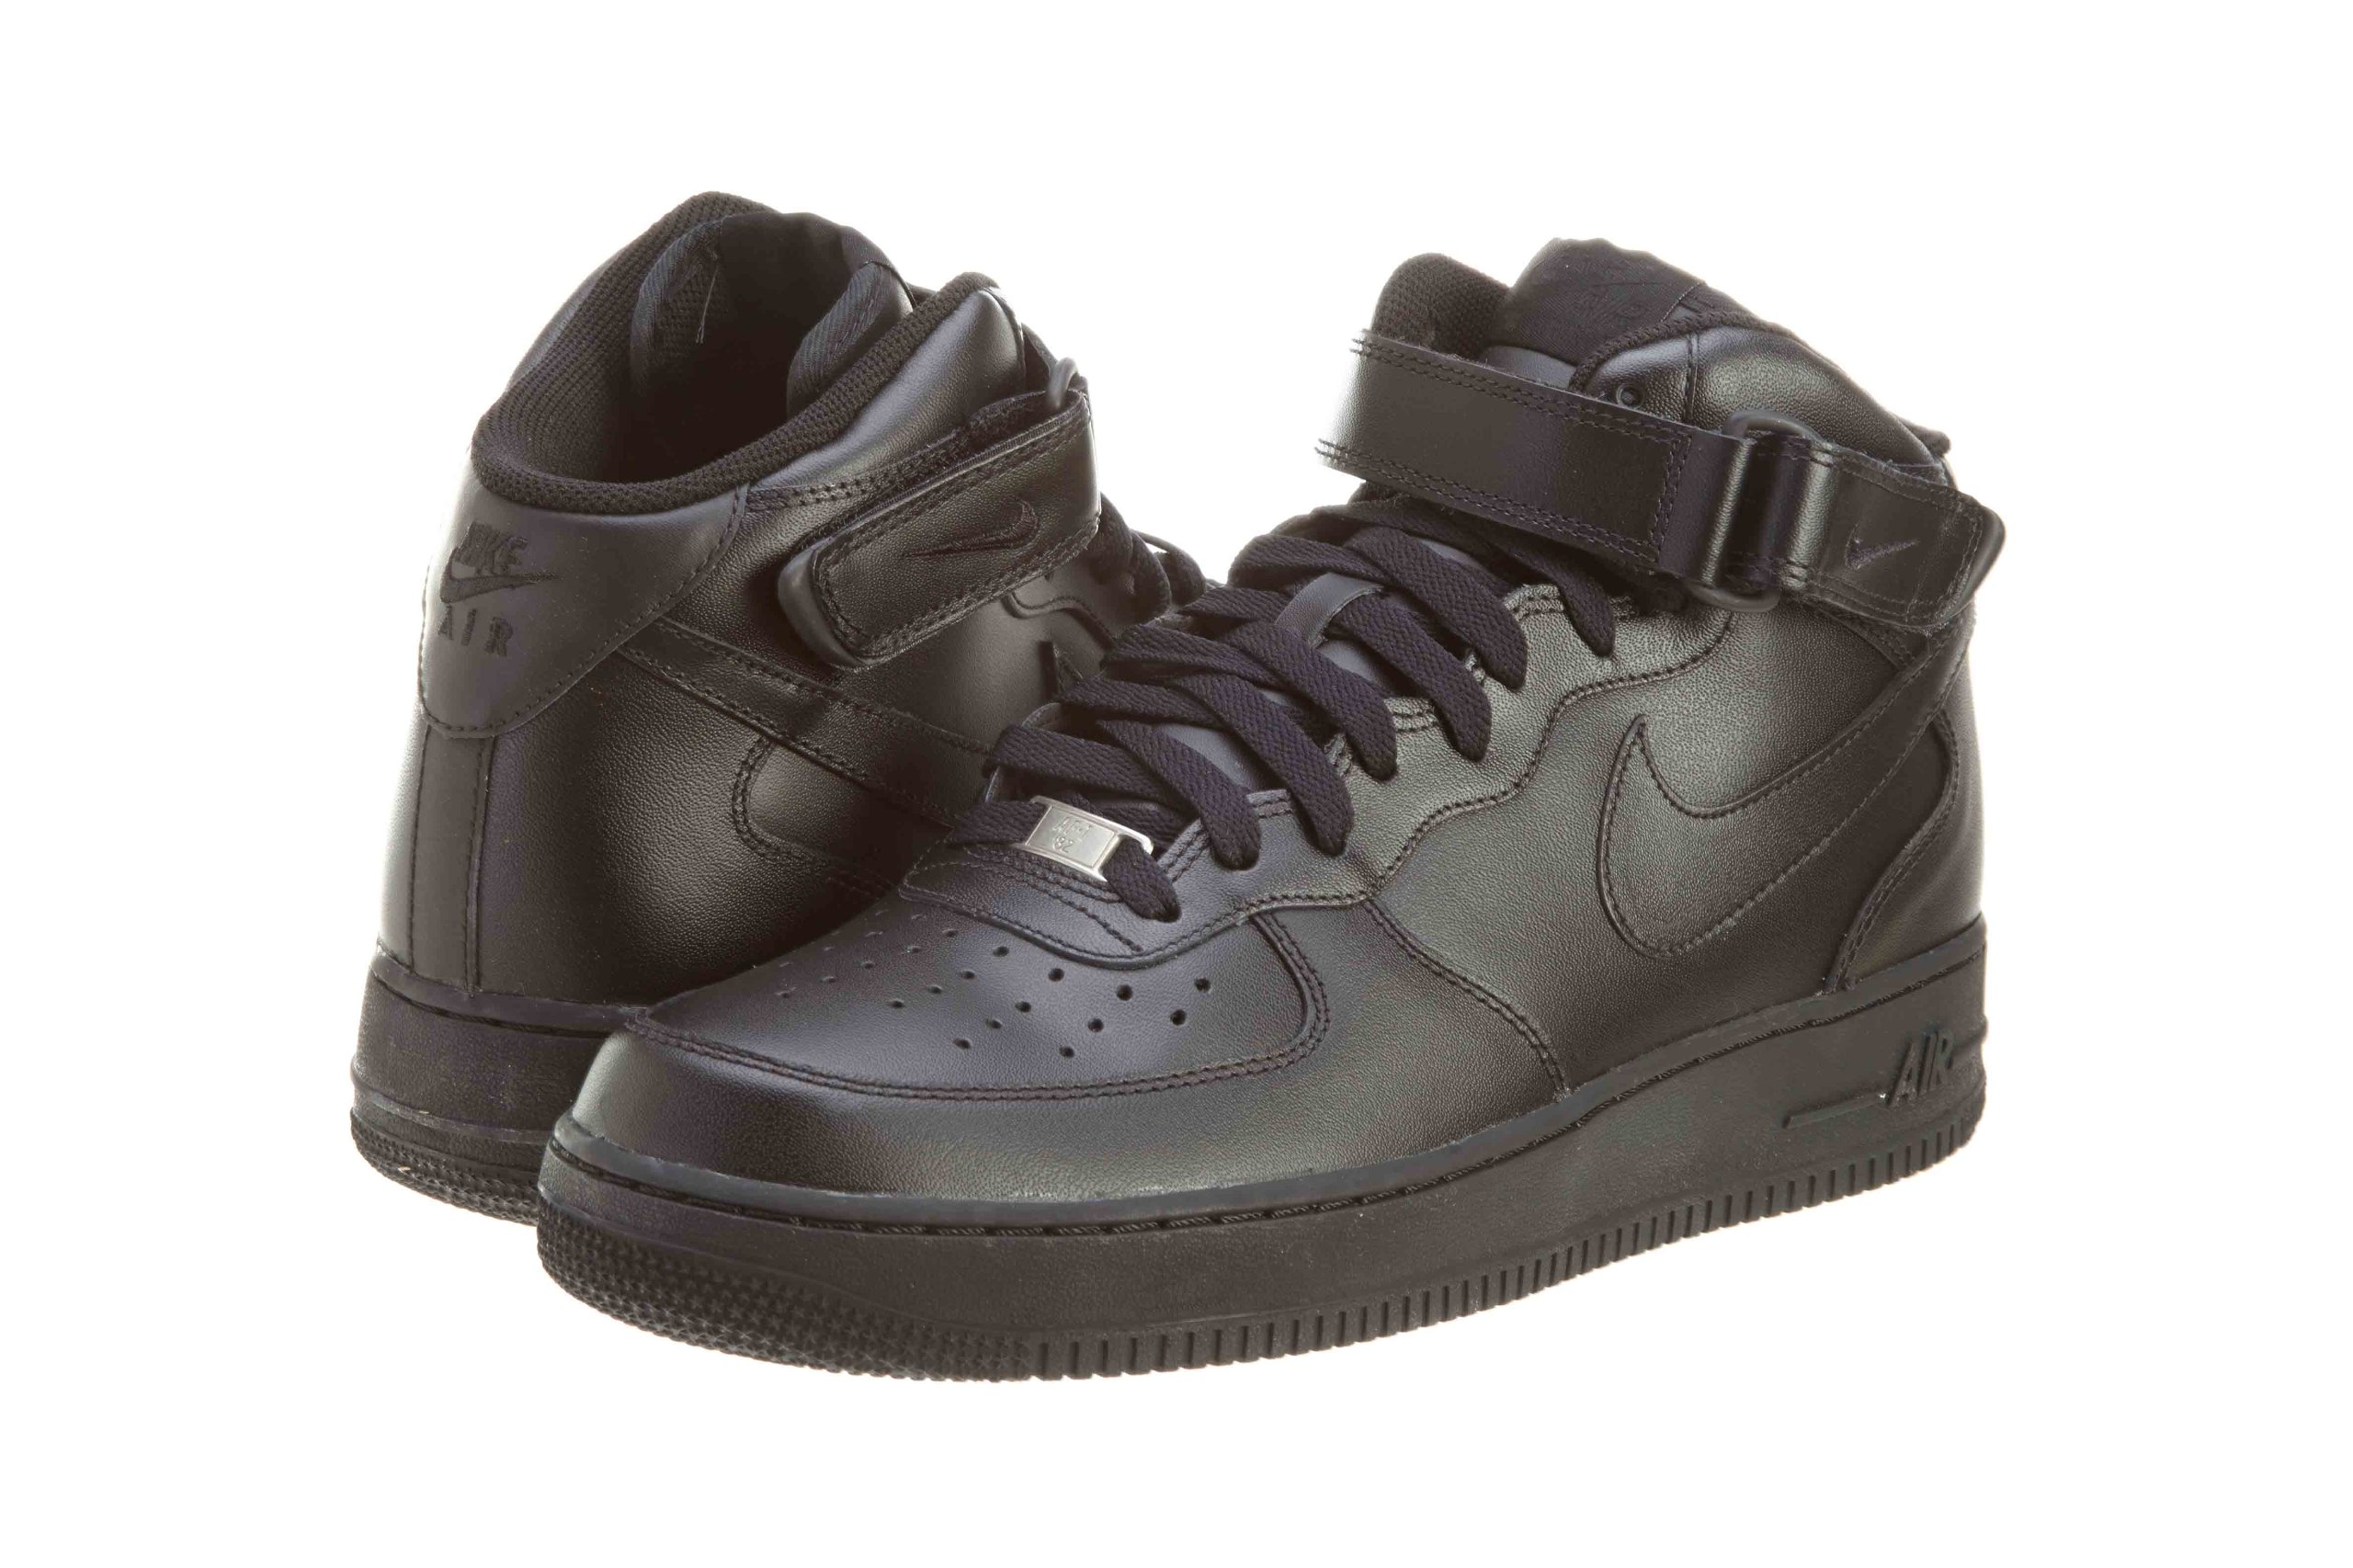 NIKE Mens Air Force 1 Mid 07 Basketball Shoes Black/Black 315123-001 Size 12